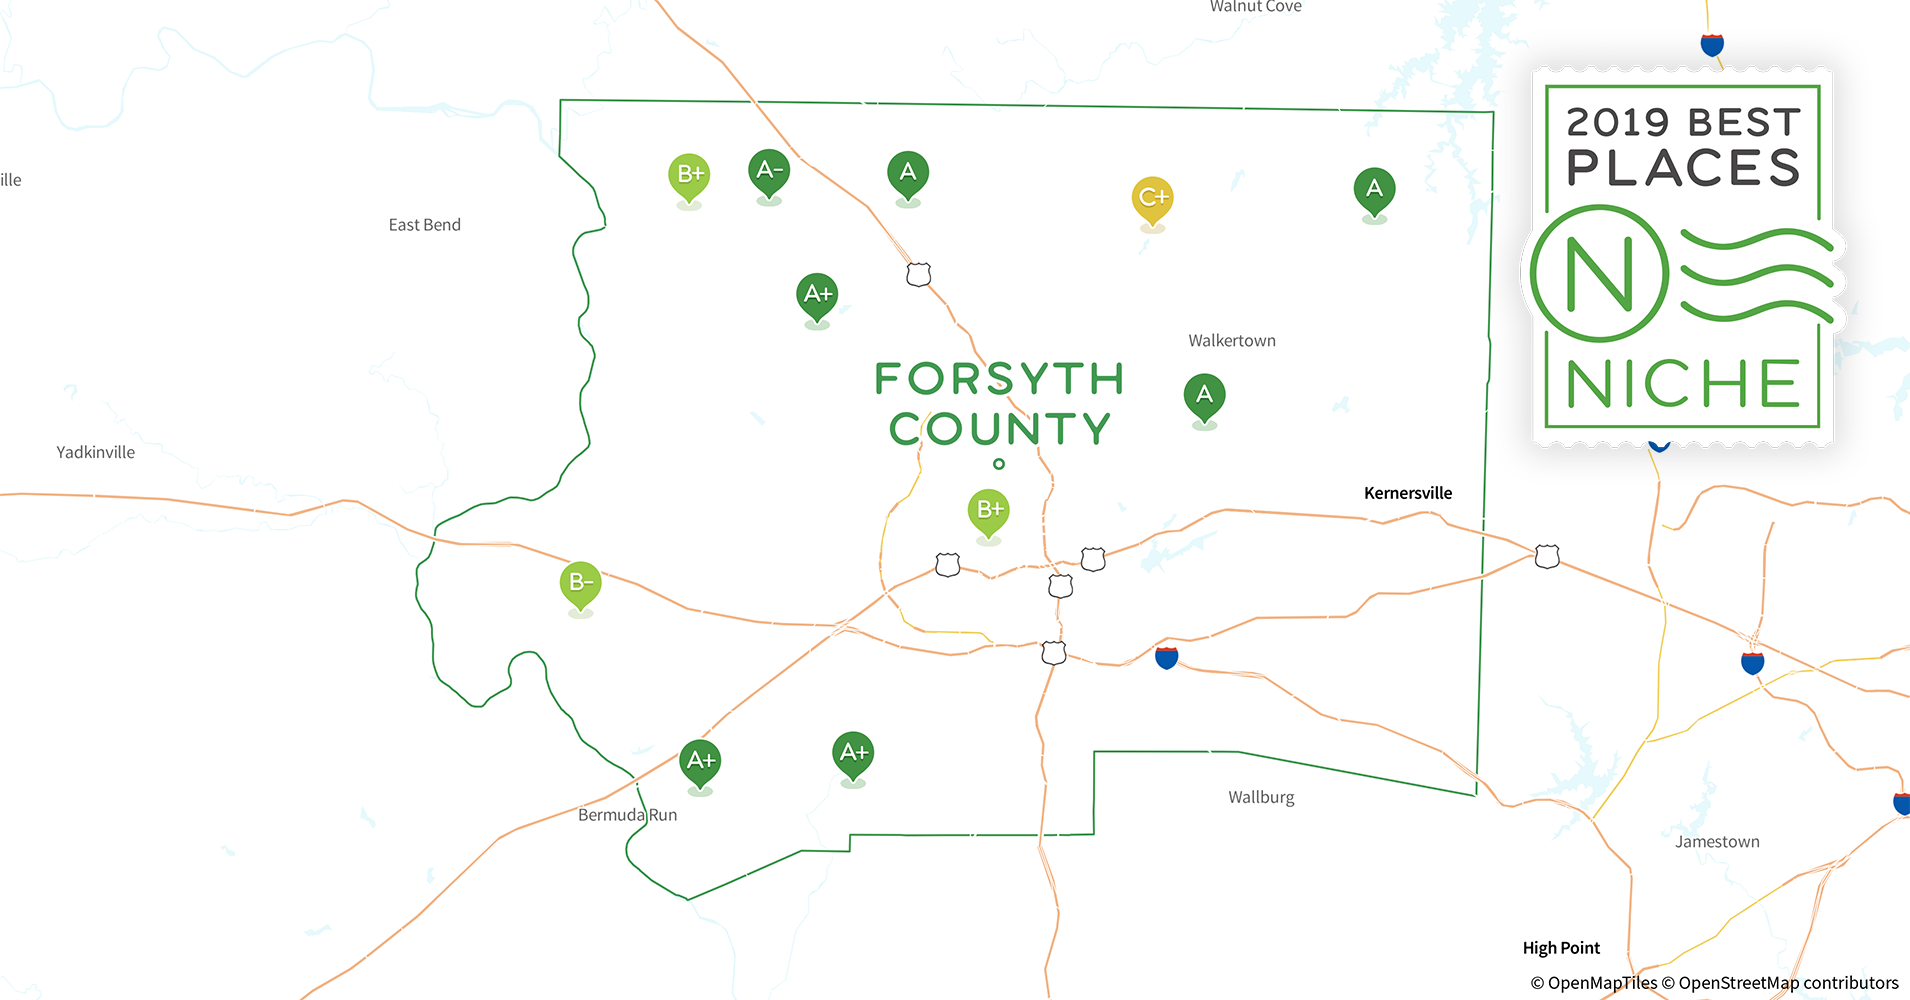 2019 Best Places to Live in Forsyth County, NC - Niche Forsyth County Tax Map on early county map, stewart county map, bacon county map, dahlonega county map, schley county map, echols county map, dooly county map, university of north carolina at chapel hill map, kennesaw county map, candler county map, chattahoochee county map, lanier county map, sweet grass county map, georgia map, quitman county map, davidson county map, bowling green county map, city of murrieta zoning map, charlton county map, gwinnett county map,